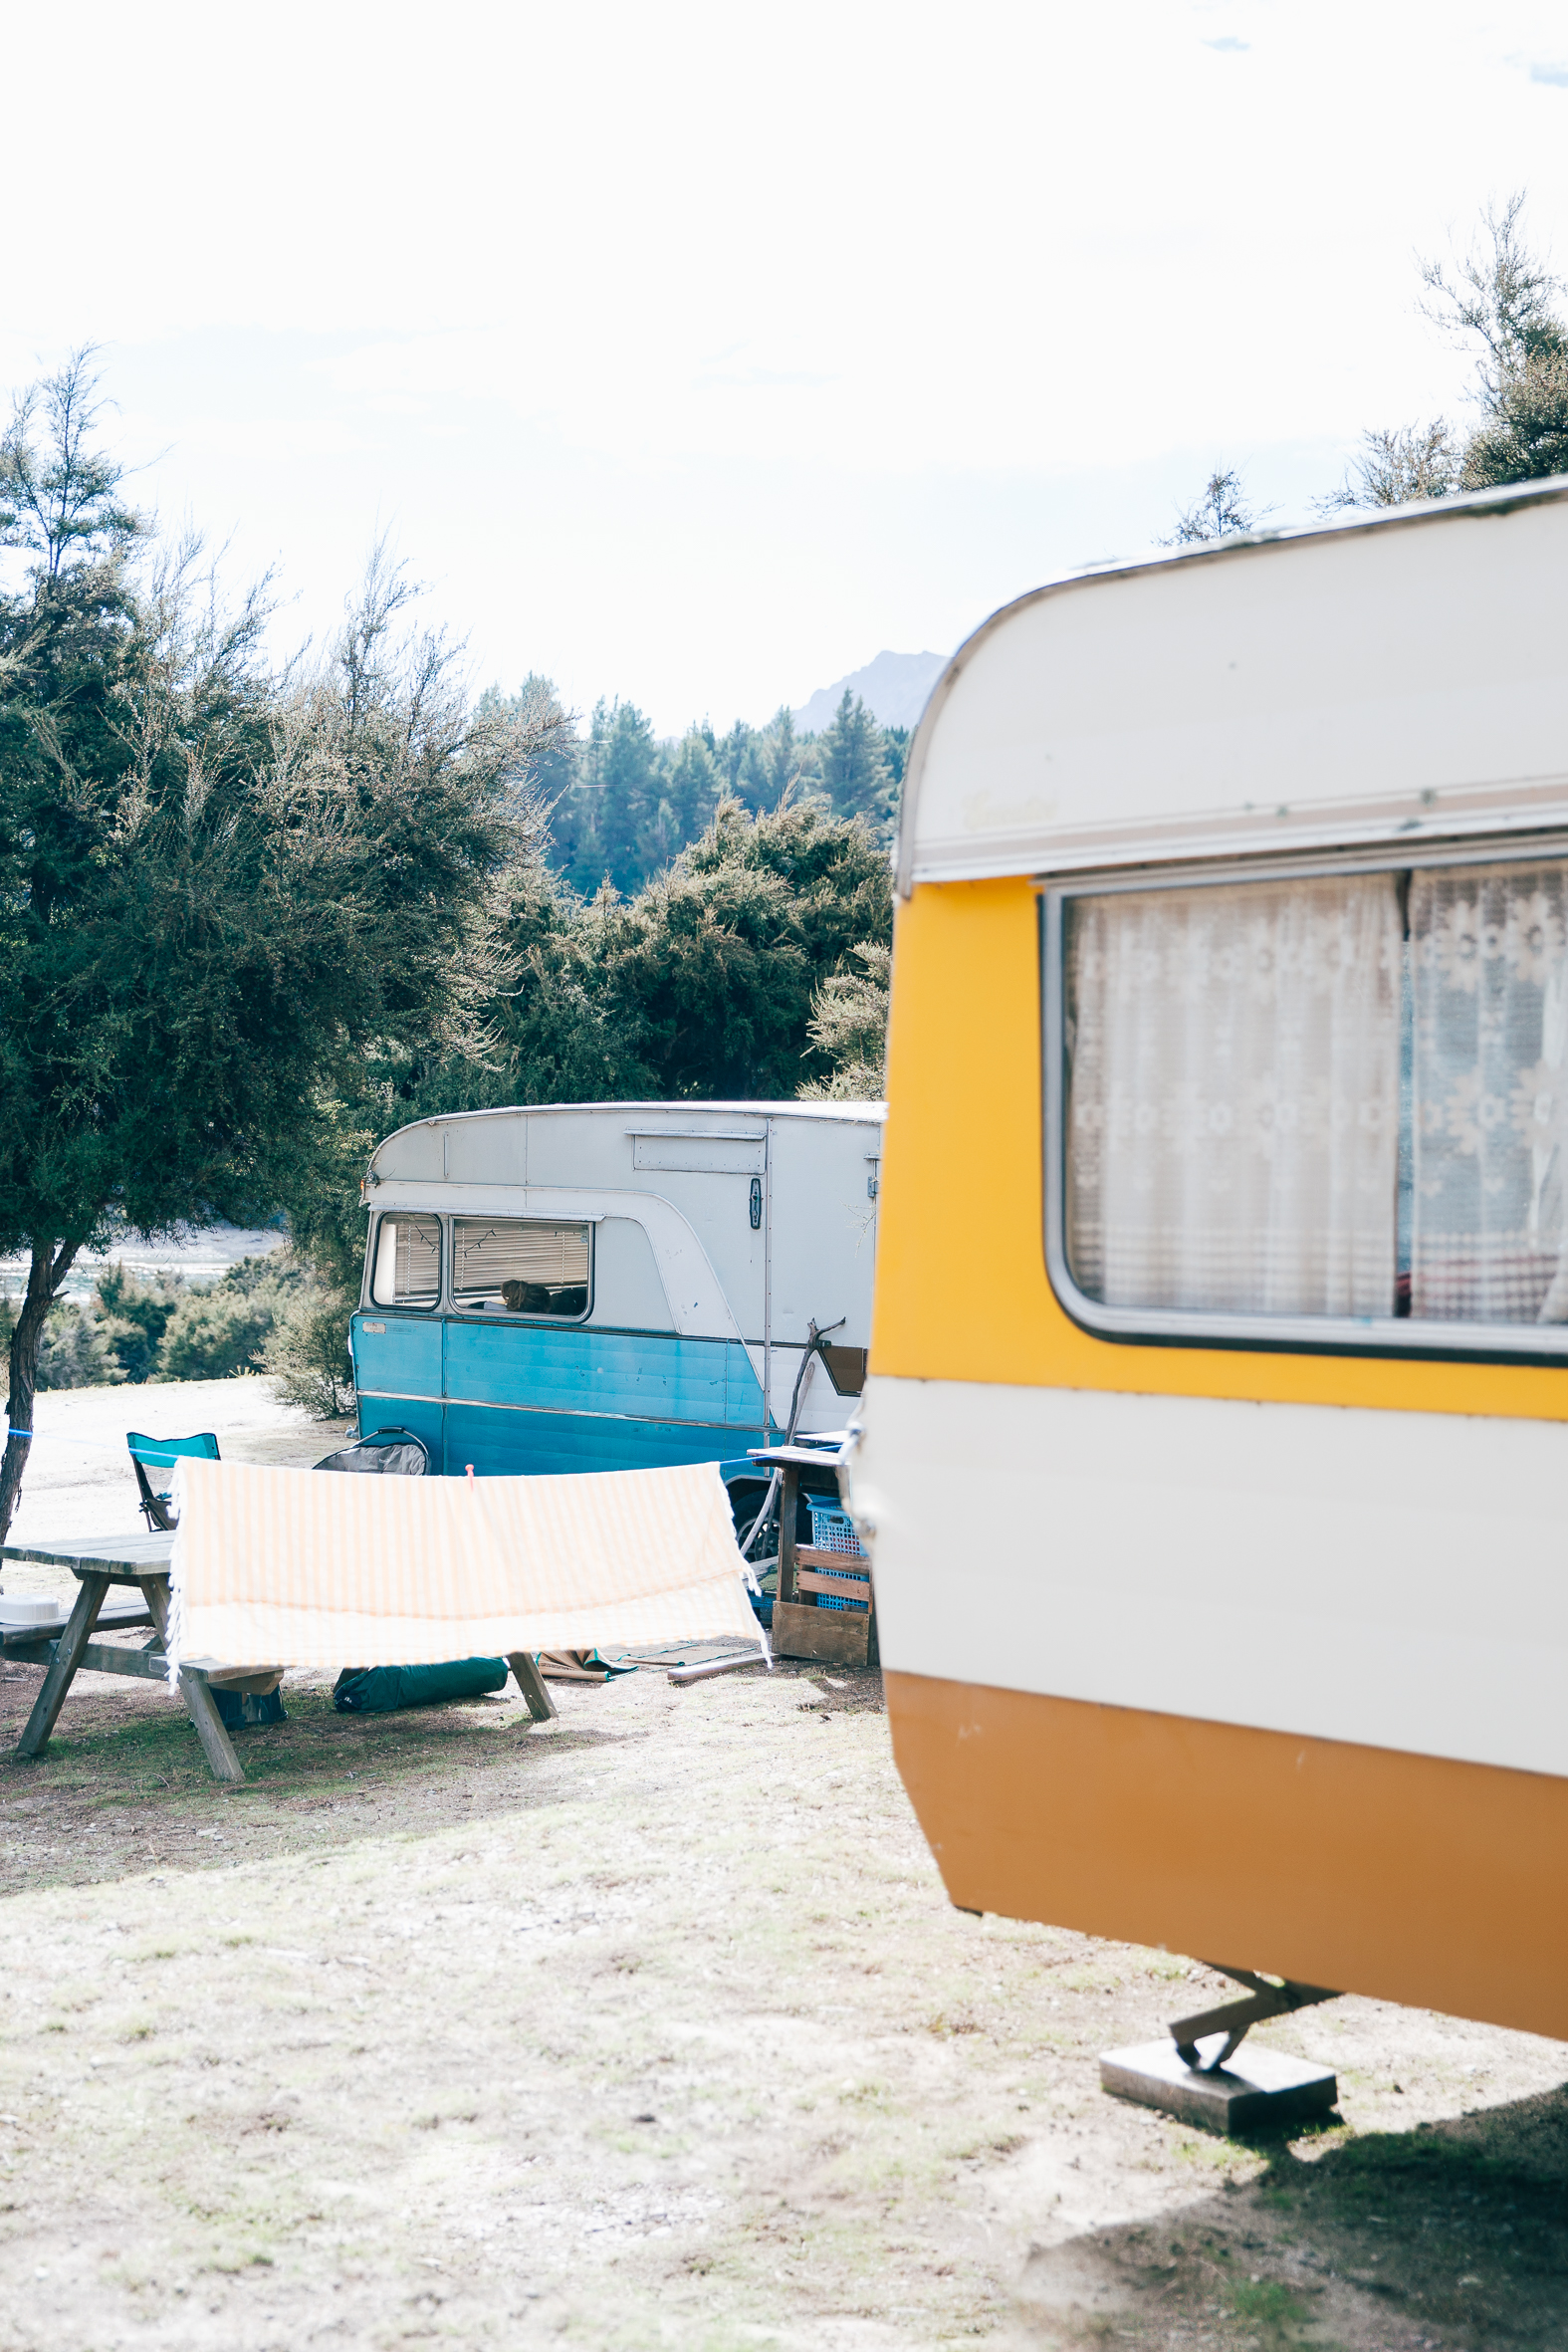 Another caravan snap from Annabelle in NZ.